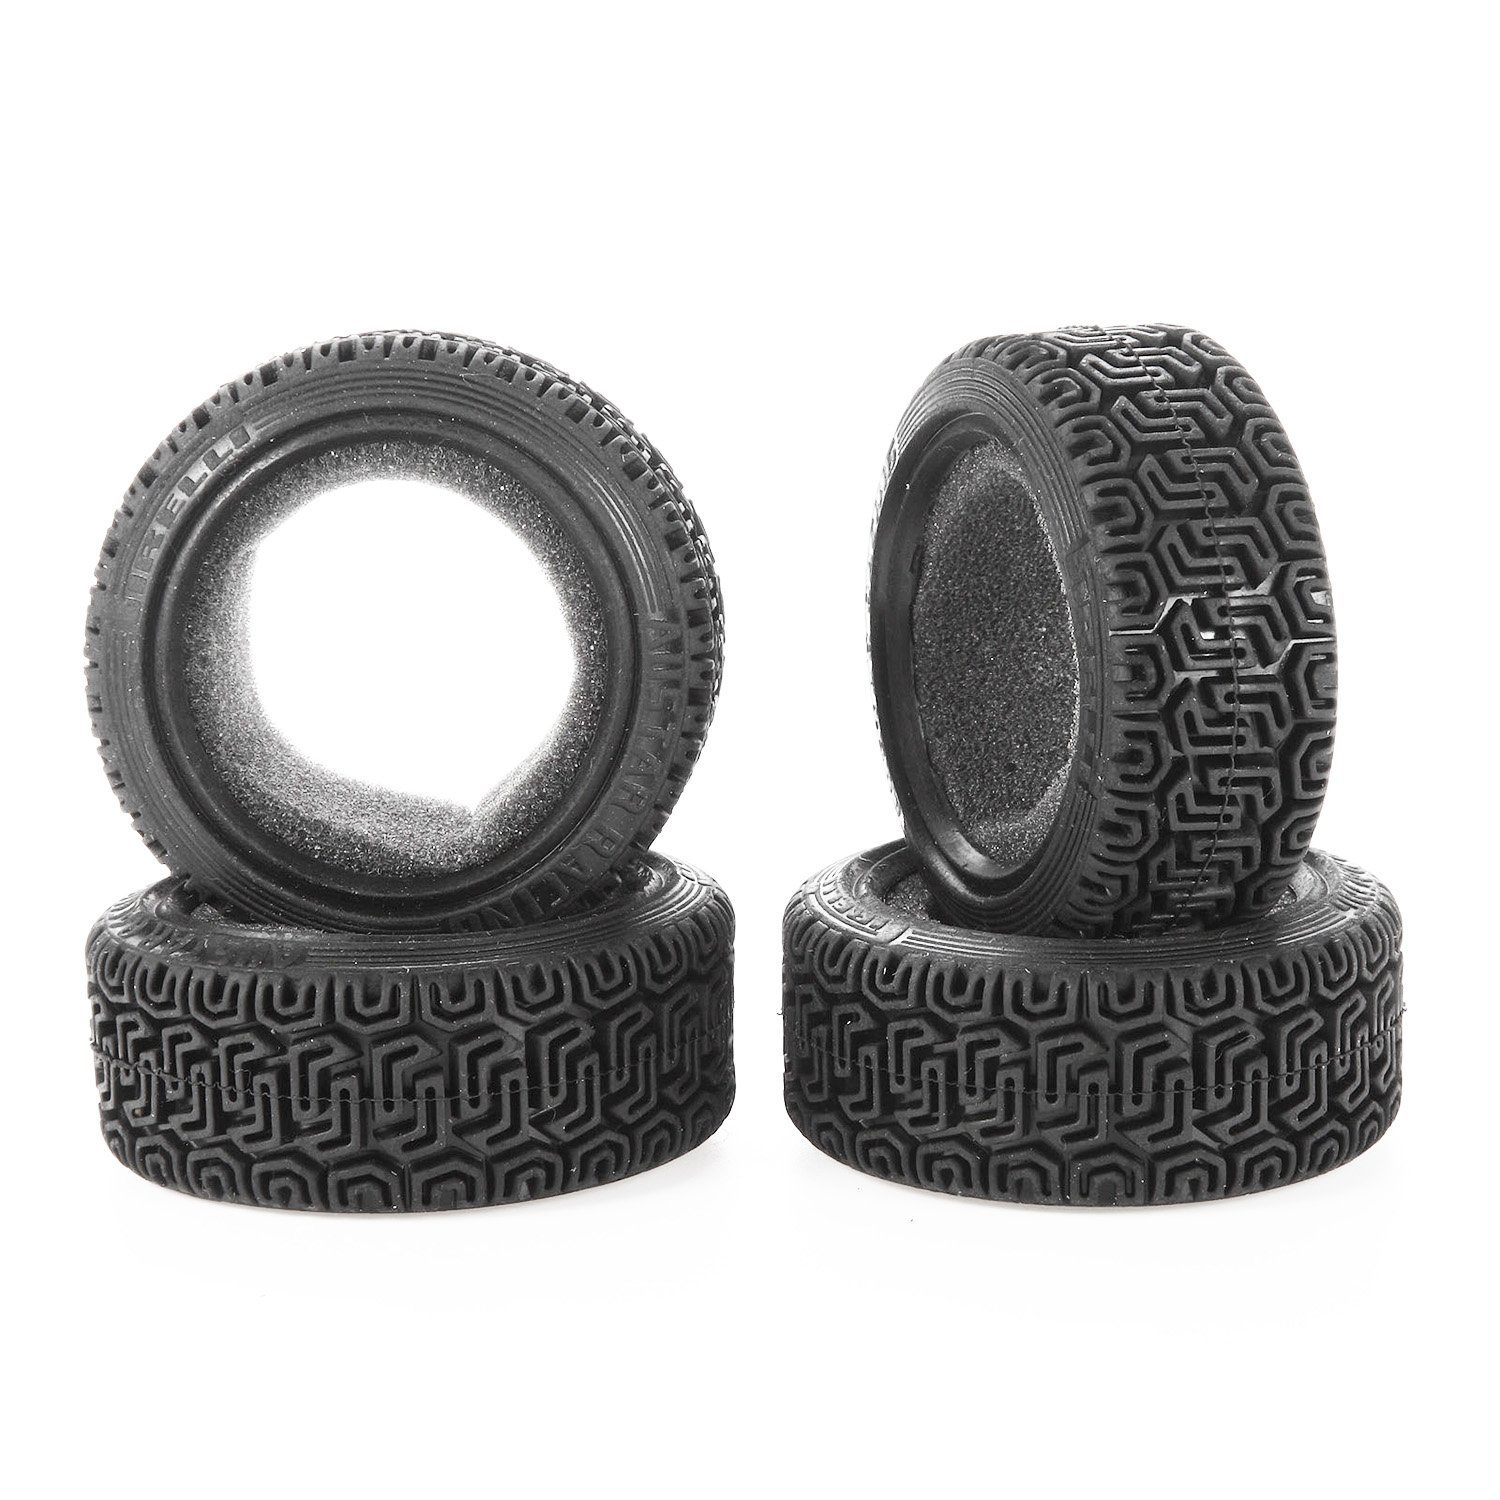 LAFEINA 1//10 RC Car Racing Flat Run Sponge Insert Rubber Tyres 68mm Tires for 1:10 RC On Road Car Traxxas Tamiya HSP HPI Kyosho RC Rally Car 4PCS